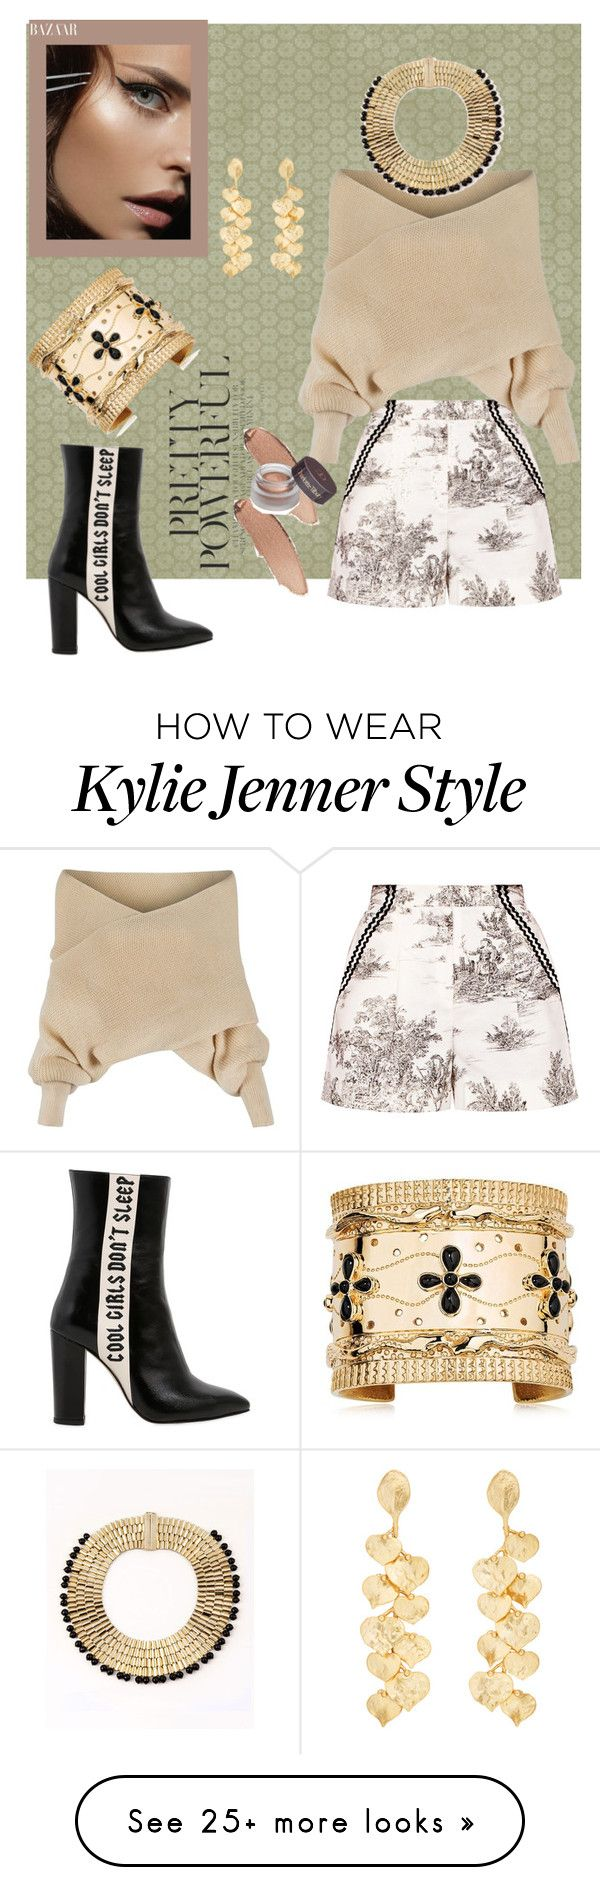 """""""Off the shoulder sweater"""" by blumbeeno on Polyvore featuring WithChic, Havva, Aurélie Bidermann, Kenneth Jay Lane and Rosantica"""